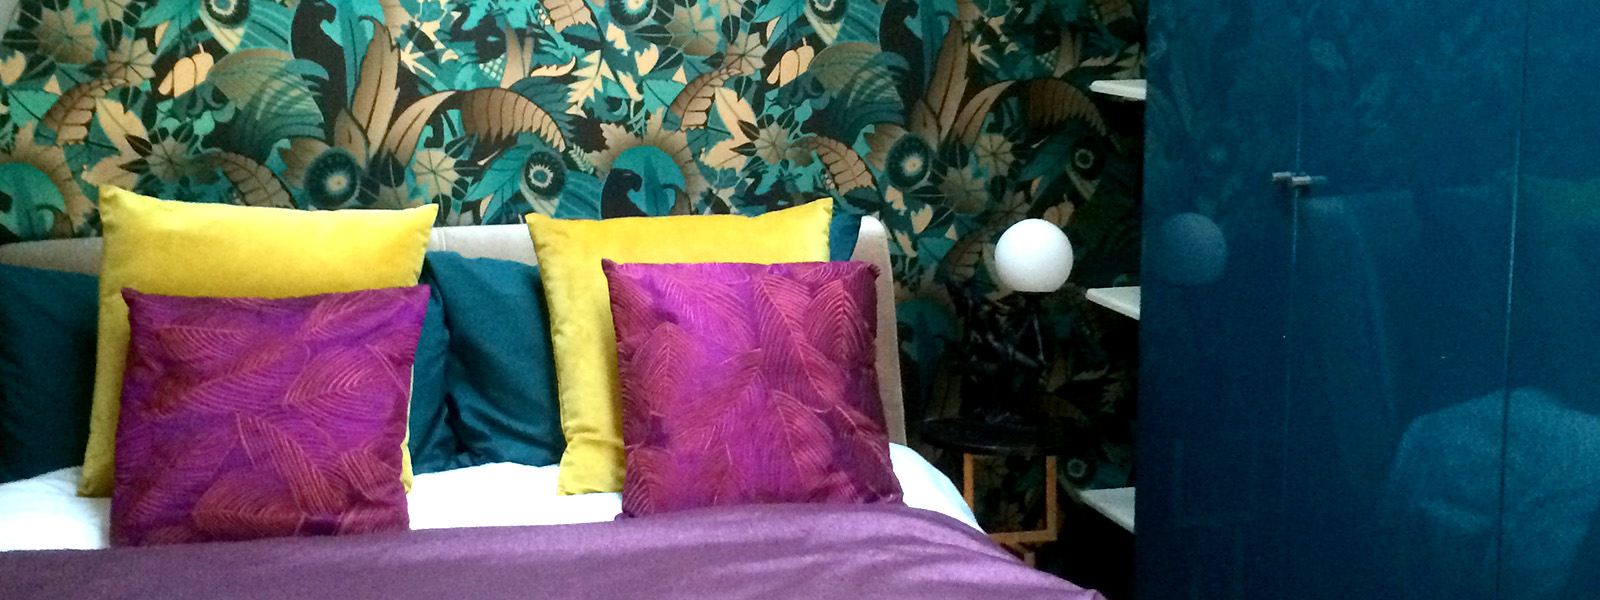 Guest bedroom interior design and styling details by Moji Salehi at Moji Interiors in Hove.